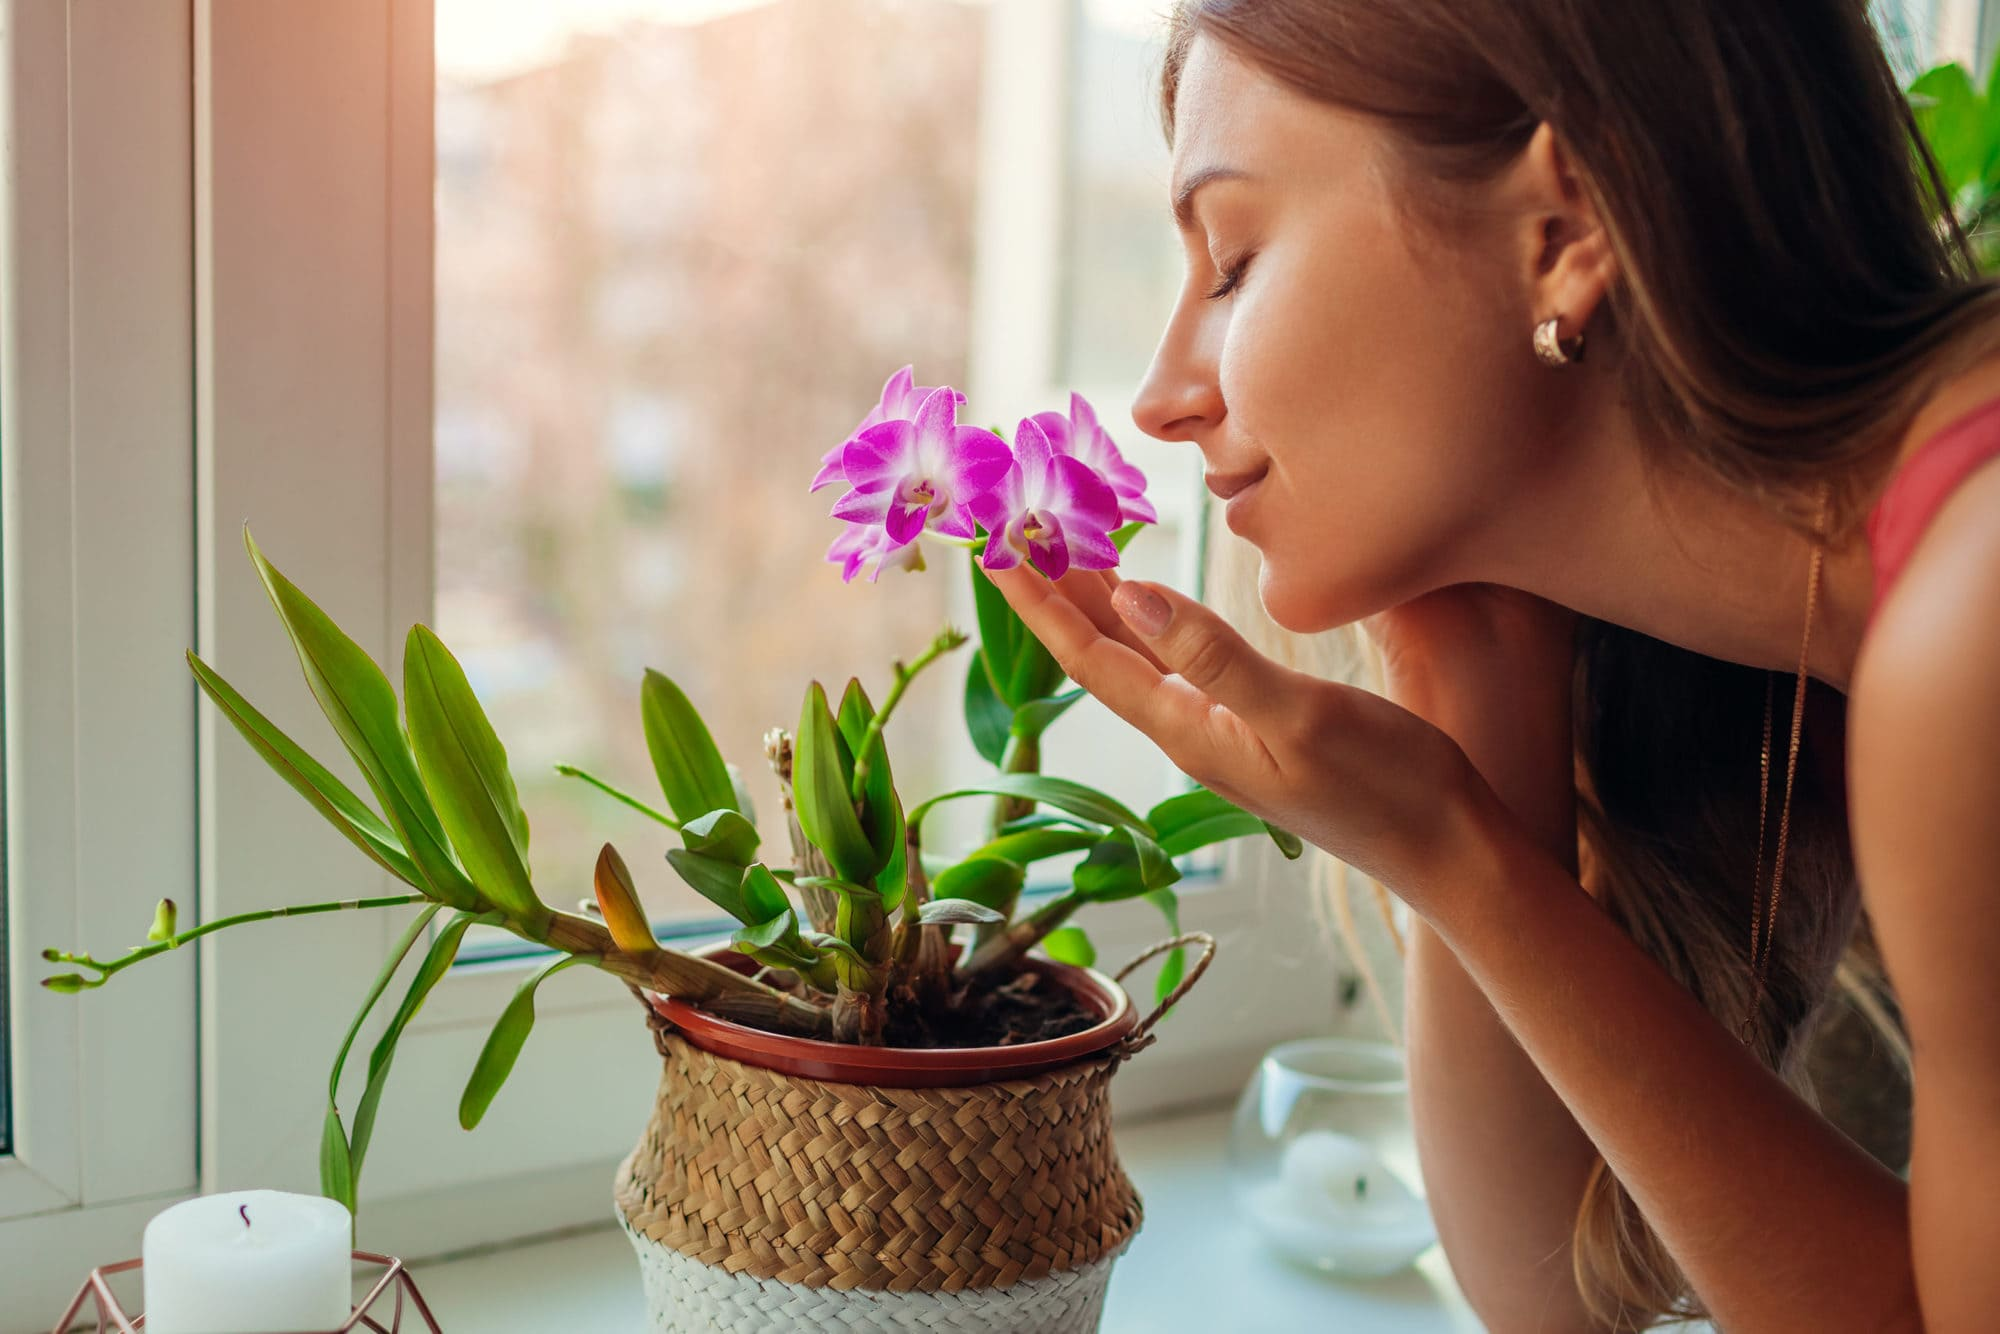 Woman smelling dendrobium orchid on window sill. Happy housewife taking care of home plants and flowers.